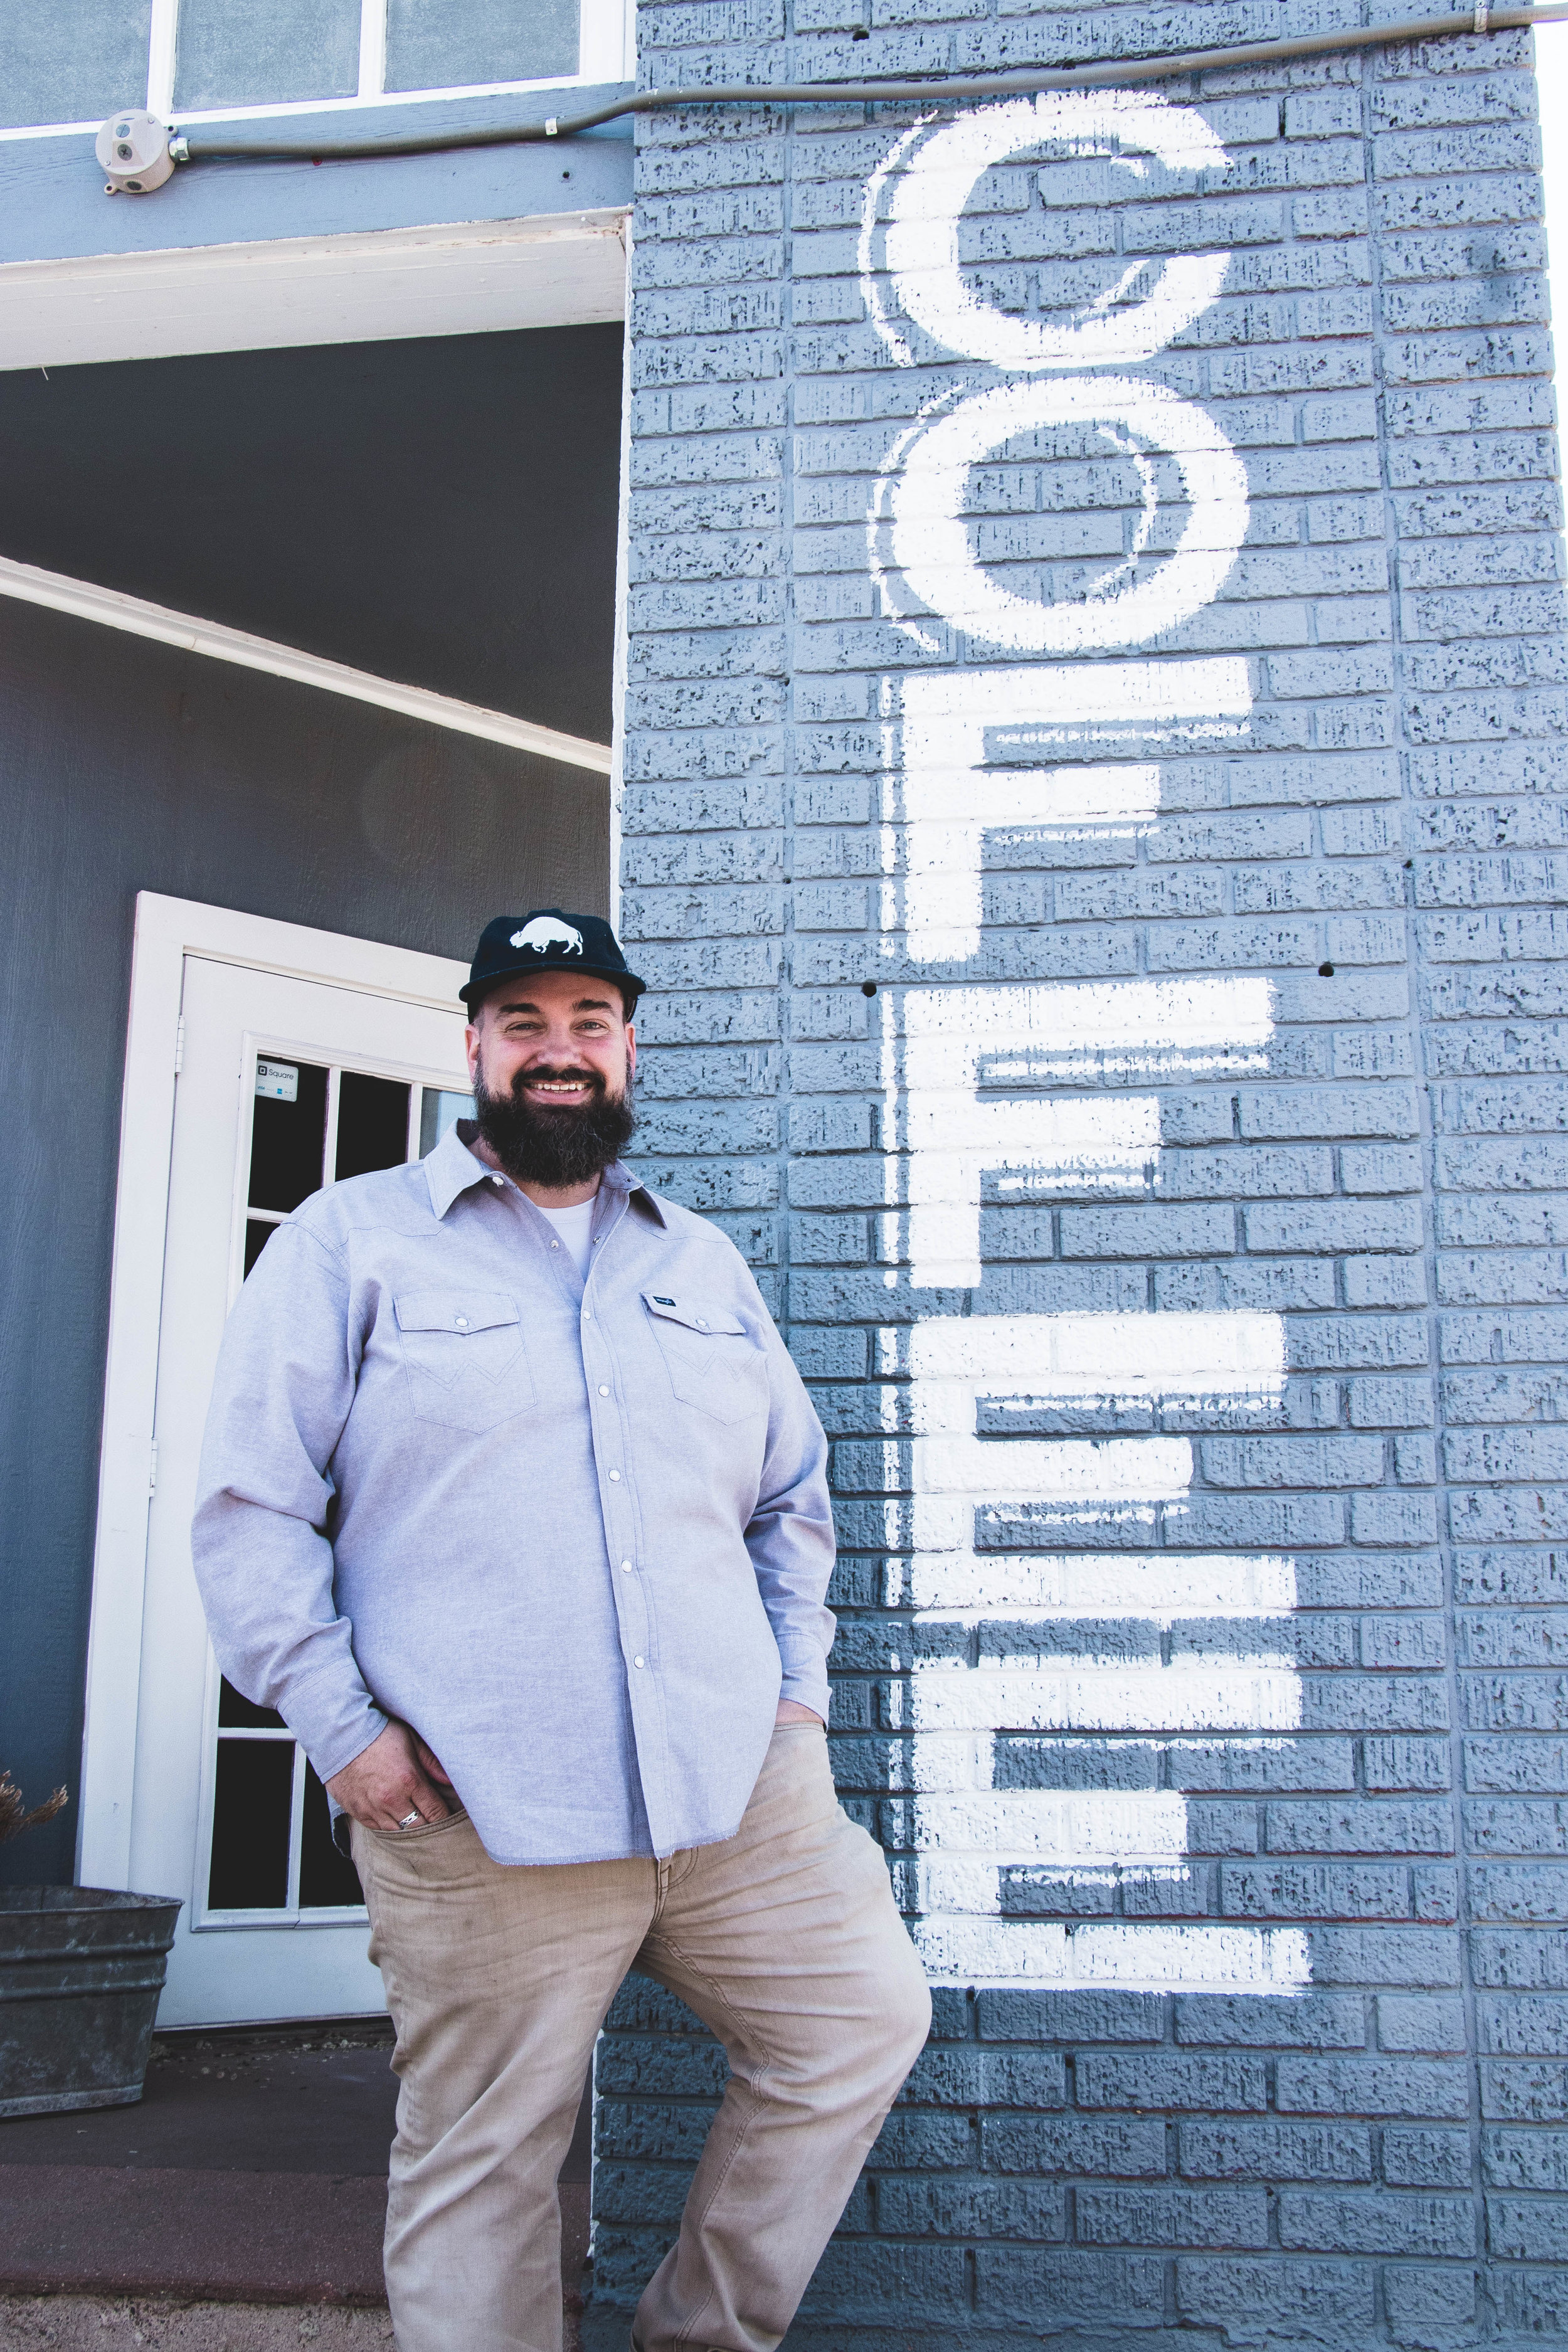 About Sugar Browns Coffee - Sugar Browns Coffee is a Lubbock staple for the coffee scene. Now lead by Justin Stice, he has created a space where coffee, community, culture, and conversations come naturally.